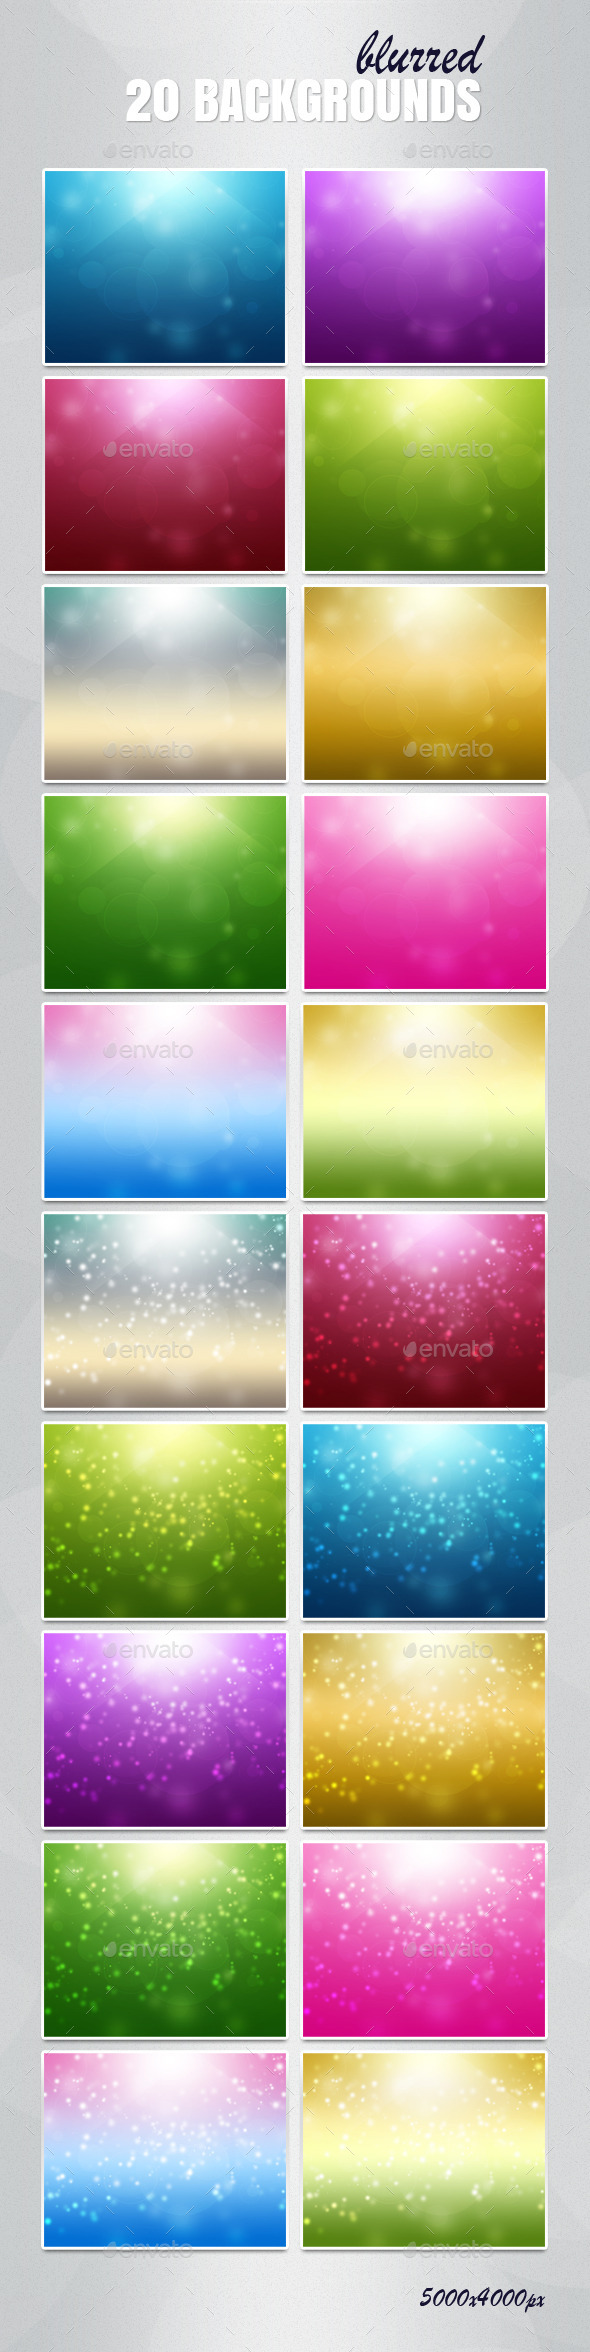 GraphicRiver 20 Backgrounds Blurred 11314047